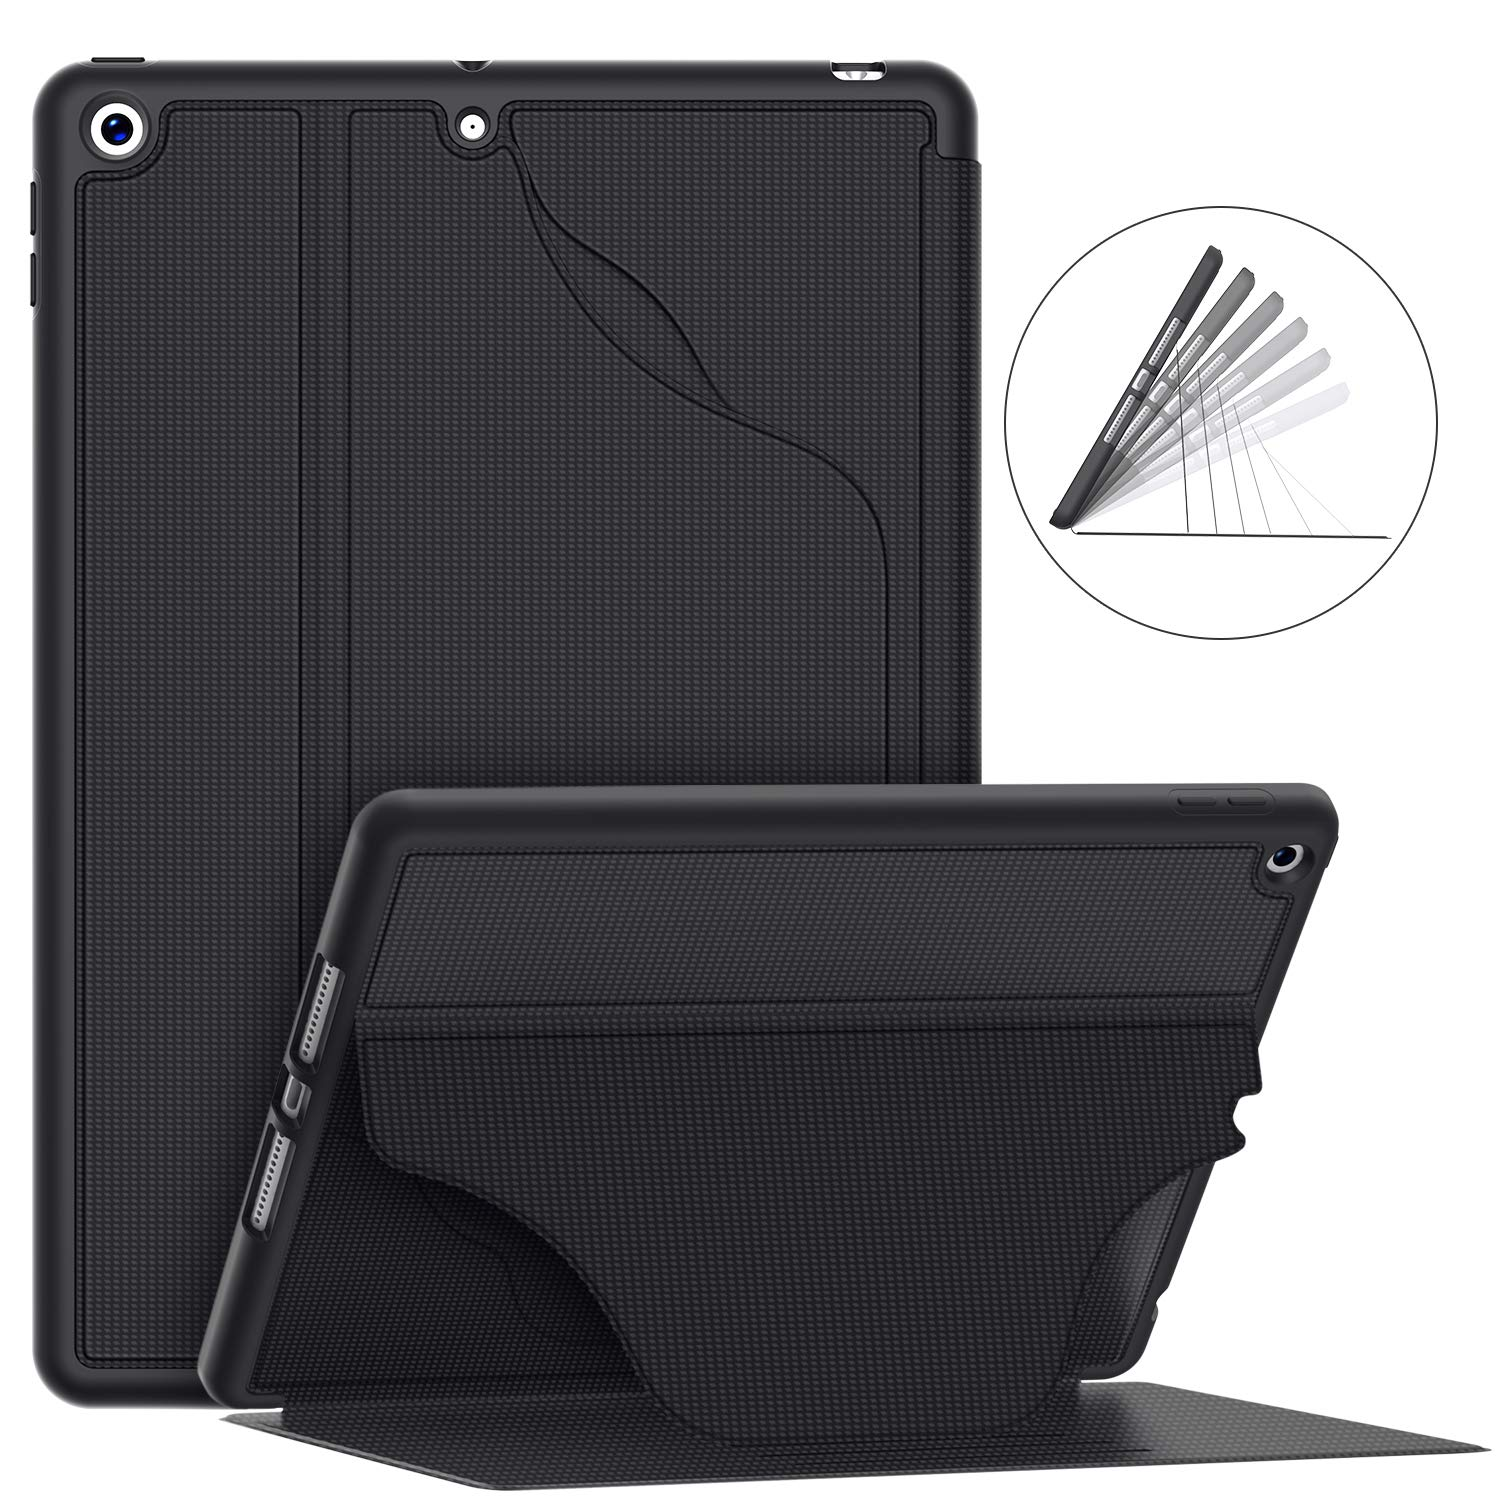 "Soke Luxury Series Case for iPad 7th Generation 10.2"" 2019- [Built-in Pencil Holder + 6 Magnetic Stand Angles + 360 Full Protection + Premium PU Leather] - Sleep/Wake Cover for iPad 10.2 Inch, Black"